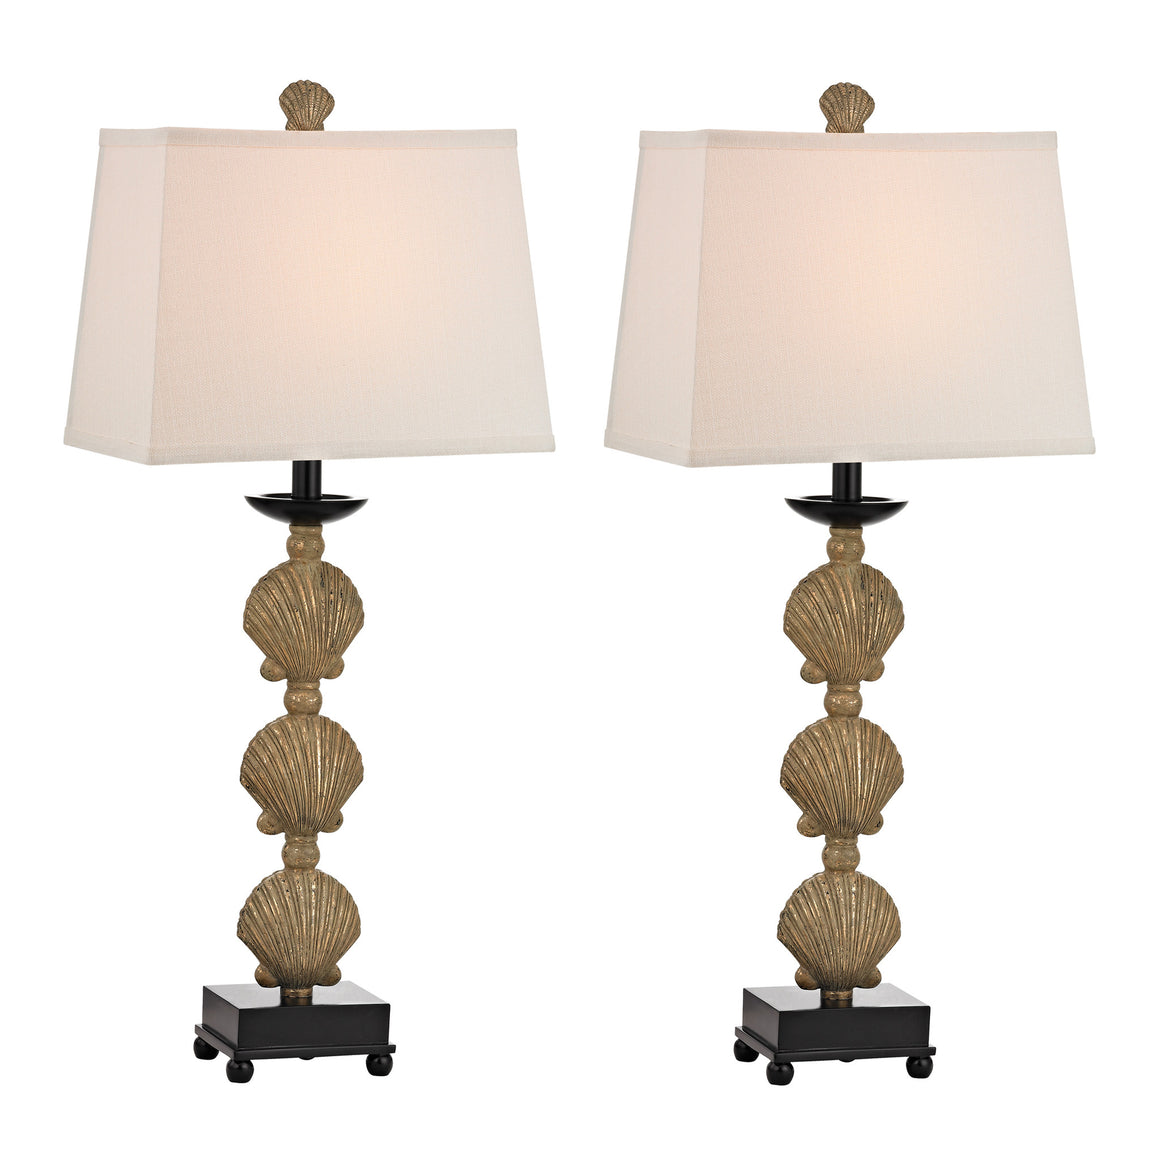 2 Pack Shell Table Lamp In Distressed Gold Finish D2449/S2